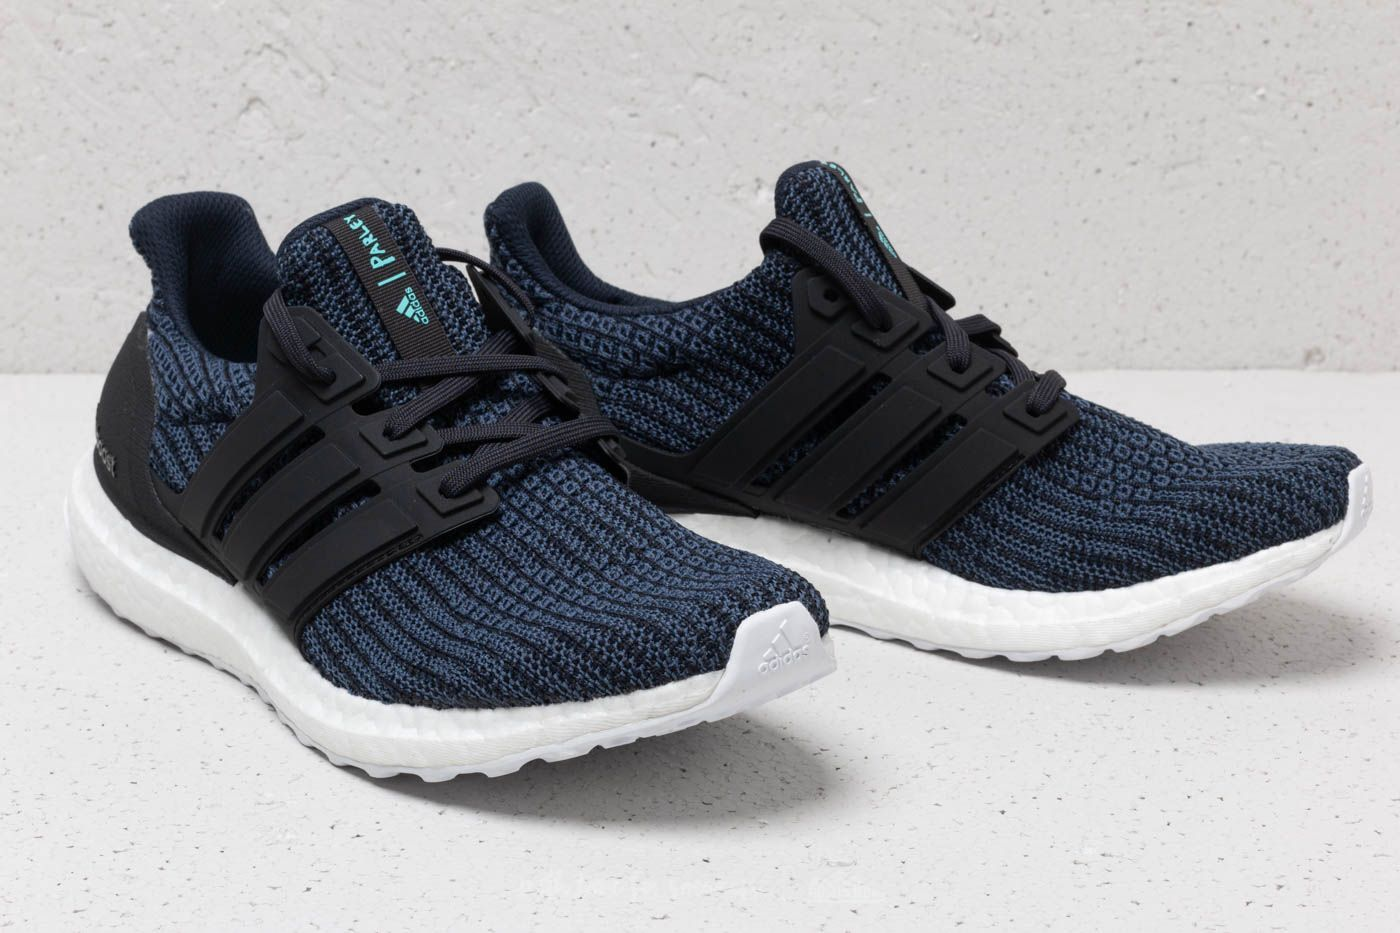 3a7b25868403d adidas UltraBOOST W Parley Legend Ink/ Carbon/ Blue Spirit in 2019 ...